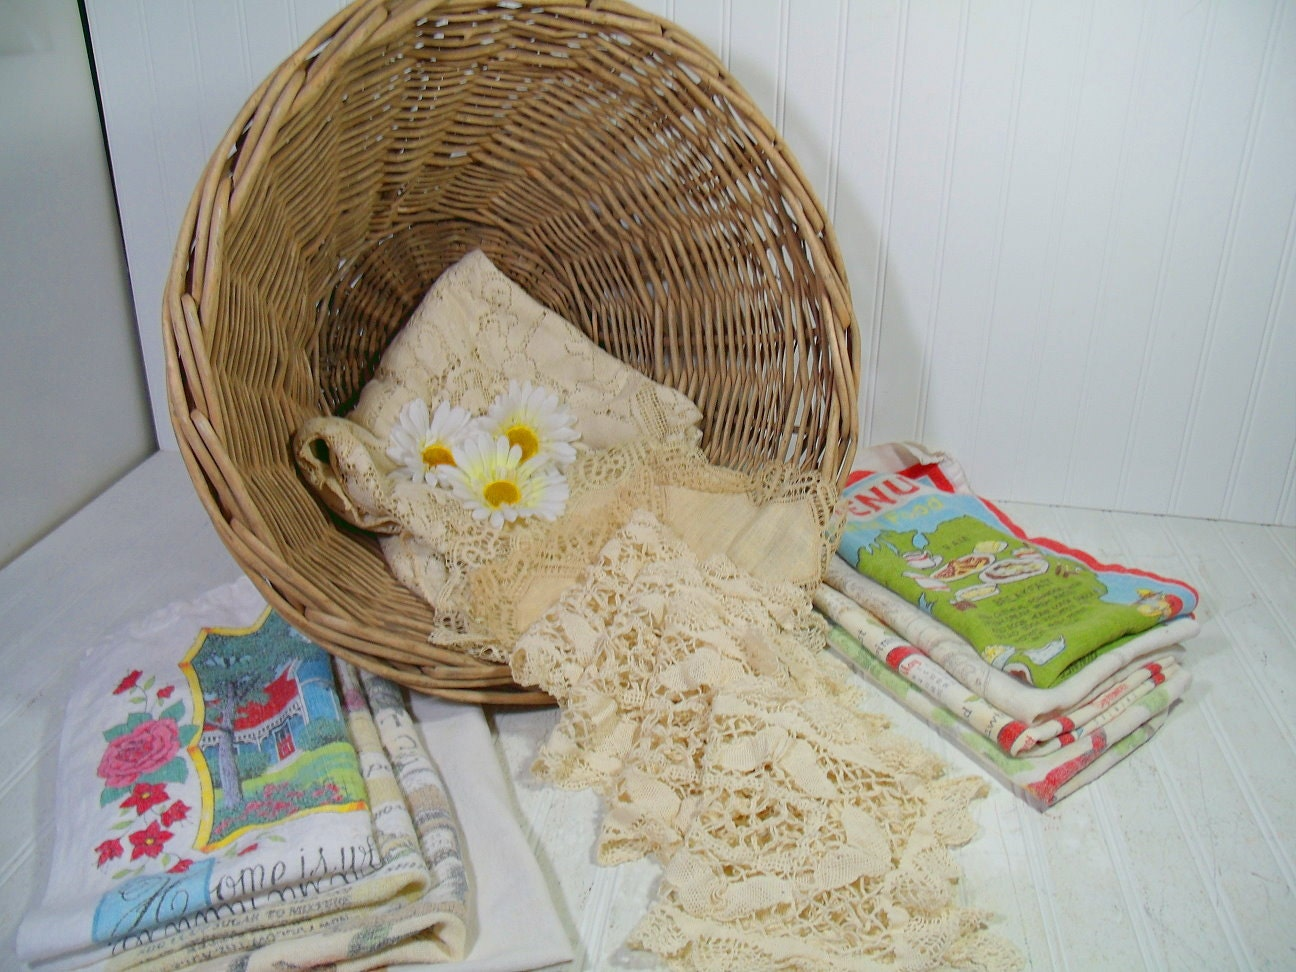 Wicker Laundry Basket With Vintage Old Lace Faded Linens